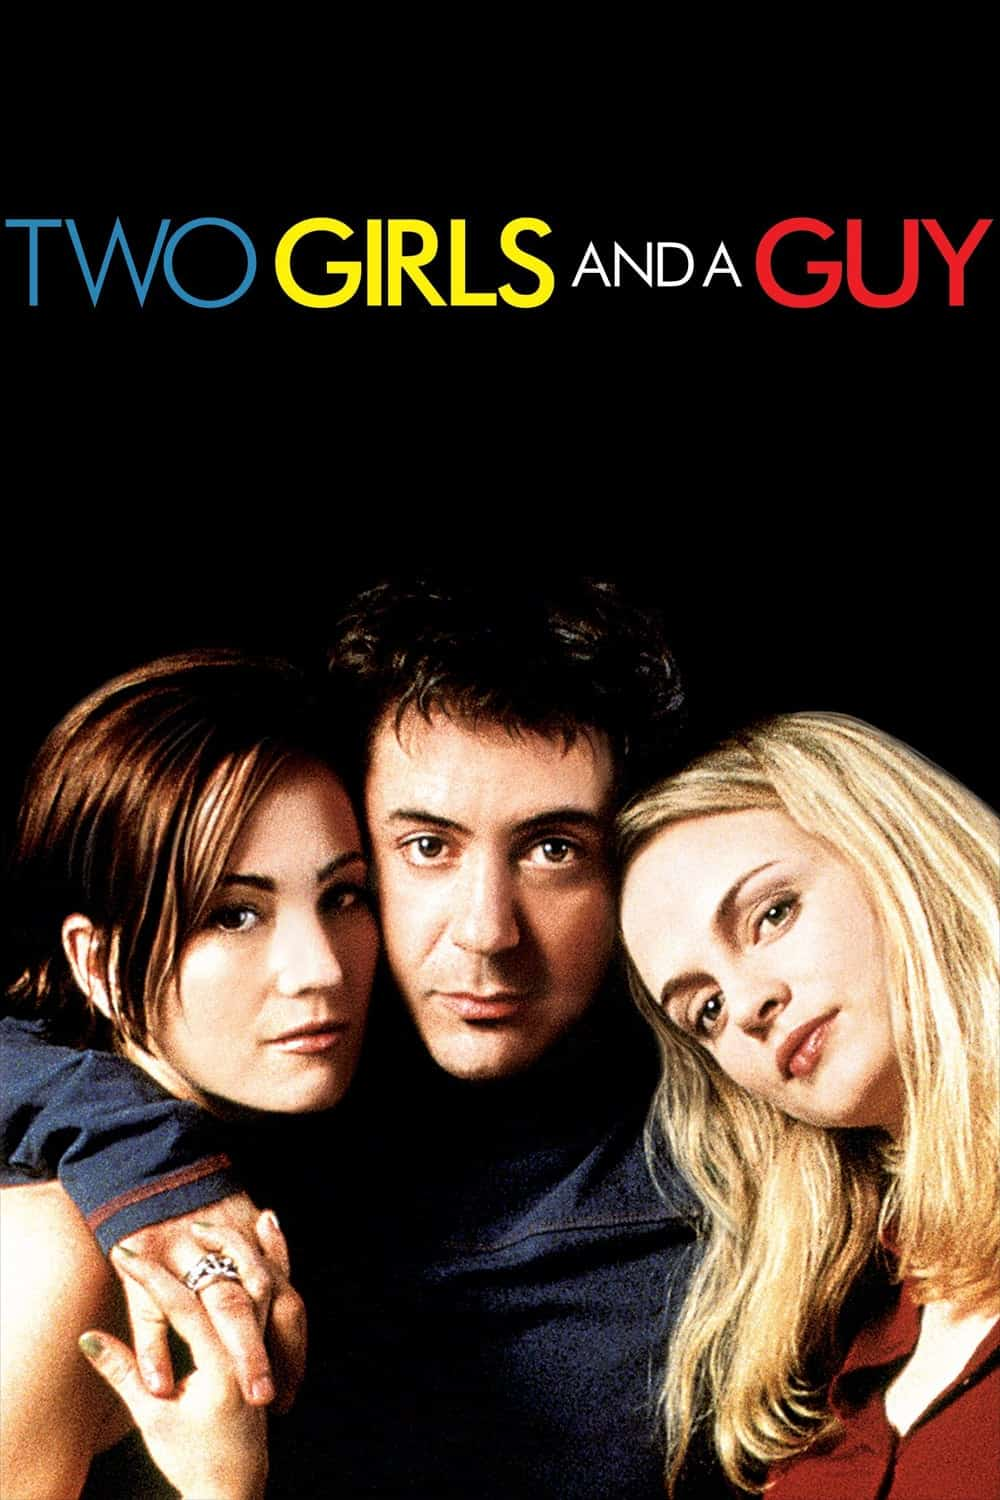 Two Girls and a Guy, 1998